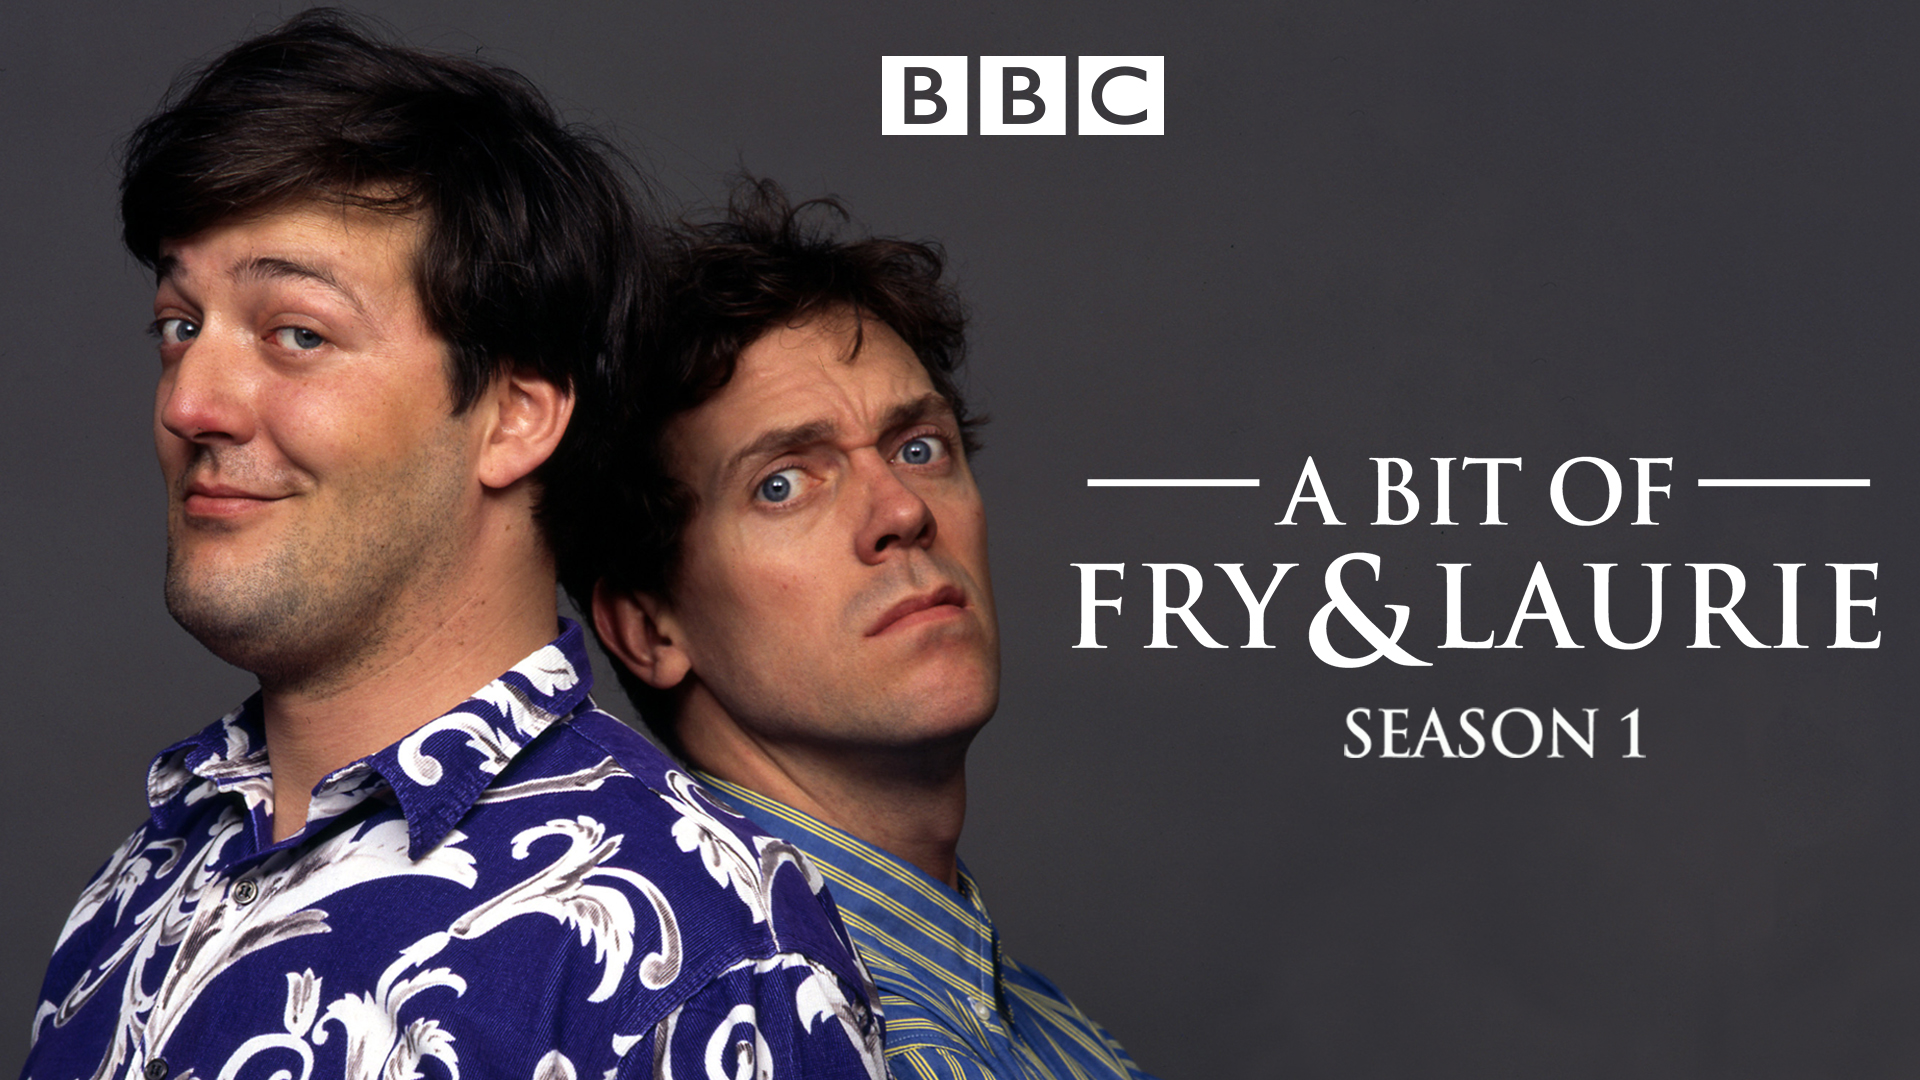 A Bit of Fry & Laurie